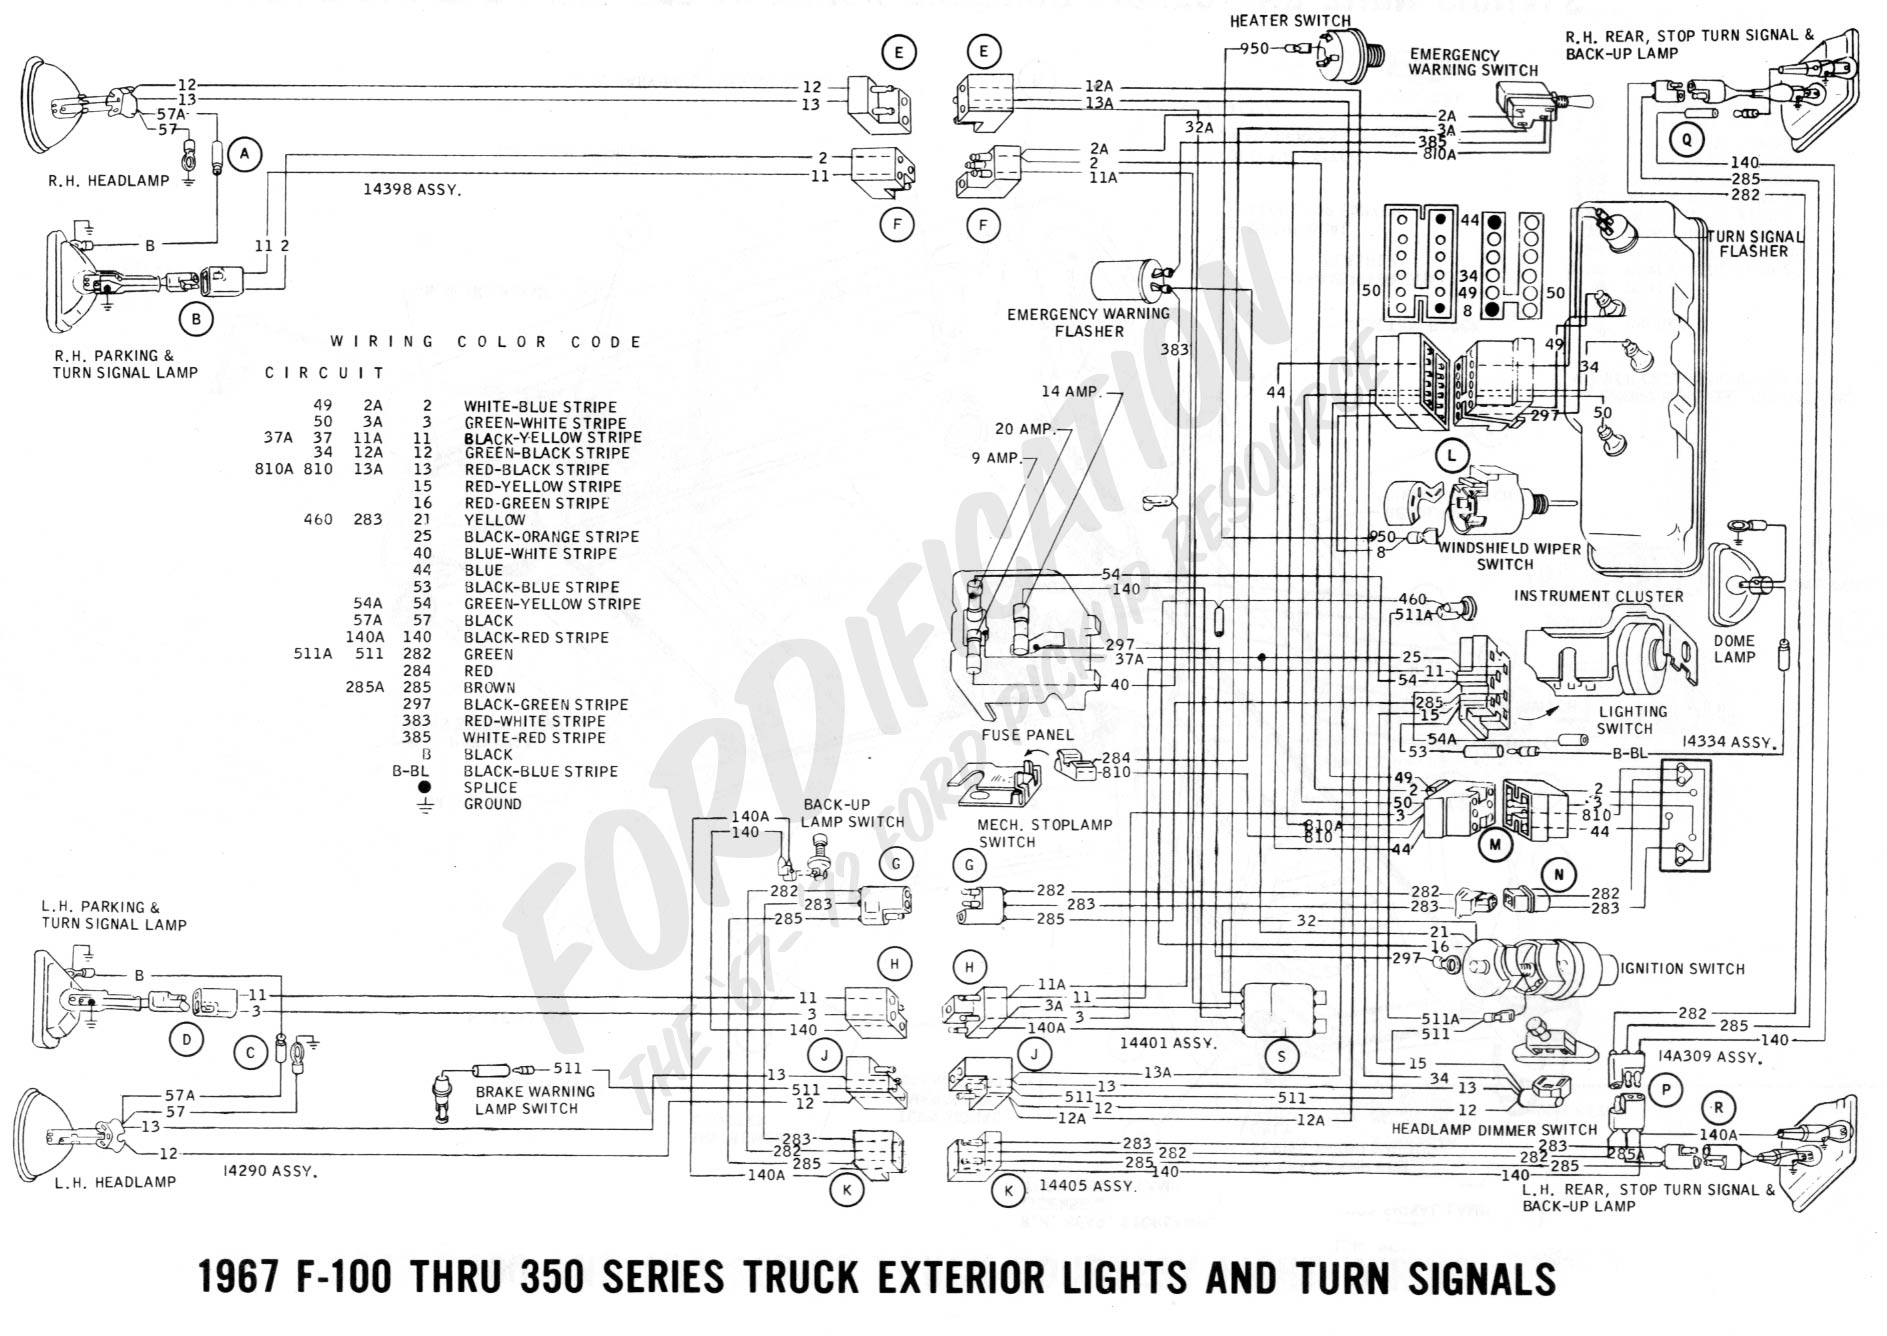 Surprising Ford Truck Ignition Wiring Basic Electronics Wiring Diagram Wiring Cloud Faunaidewilluminateatxorg